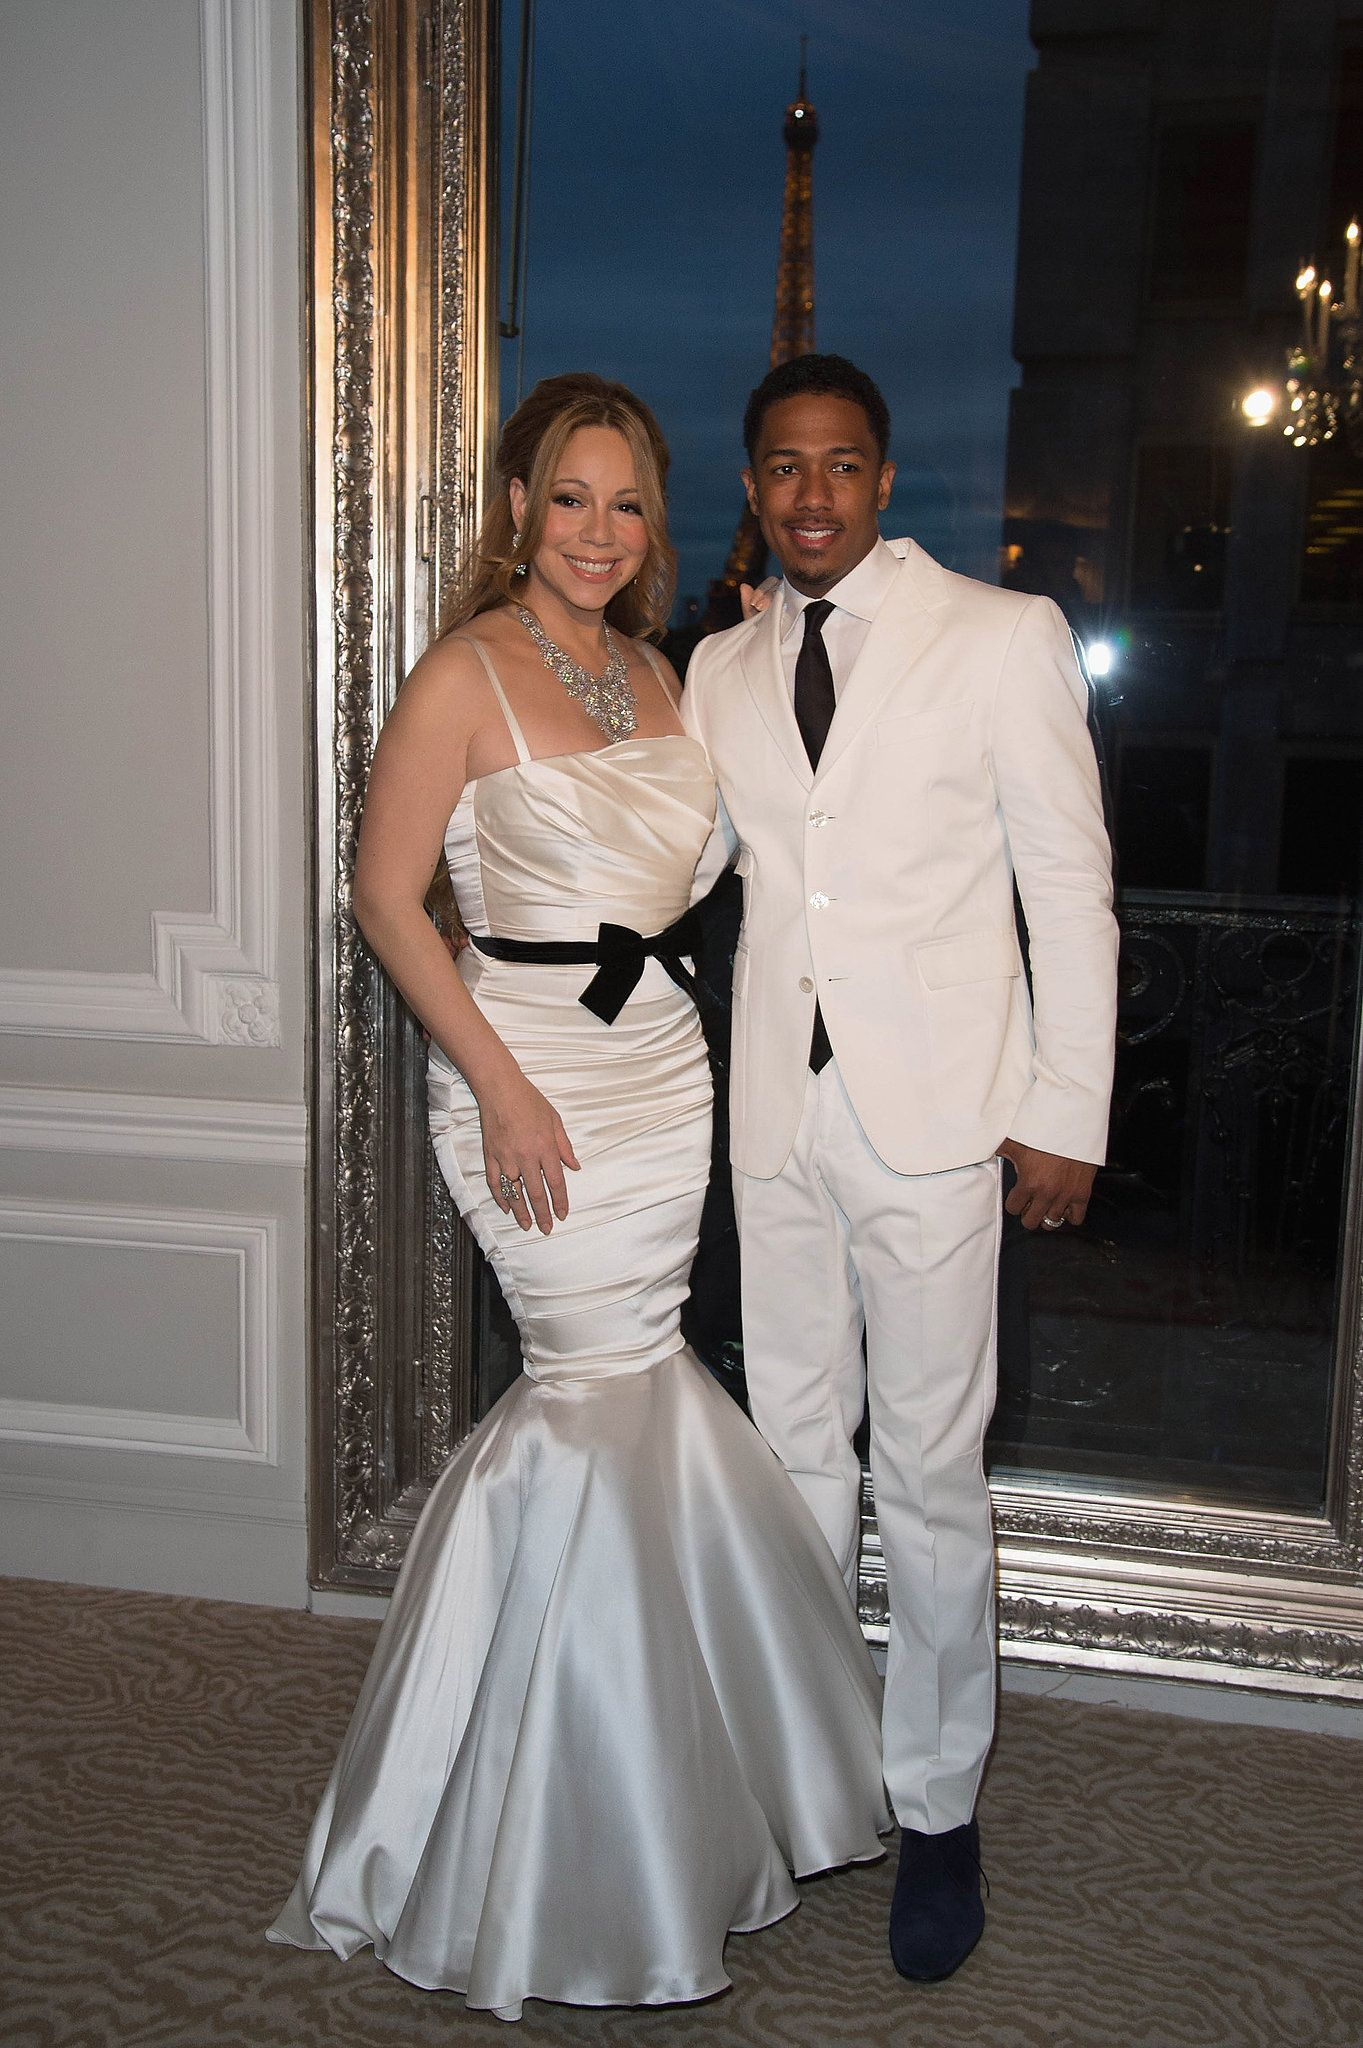 Mariah Carey And Nick Cannon Dressed Up Once Again As Bride Groom For Their Vow Renewal Ceremony In Paris April 2017 They Wed The Bahamas May